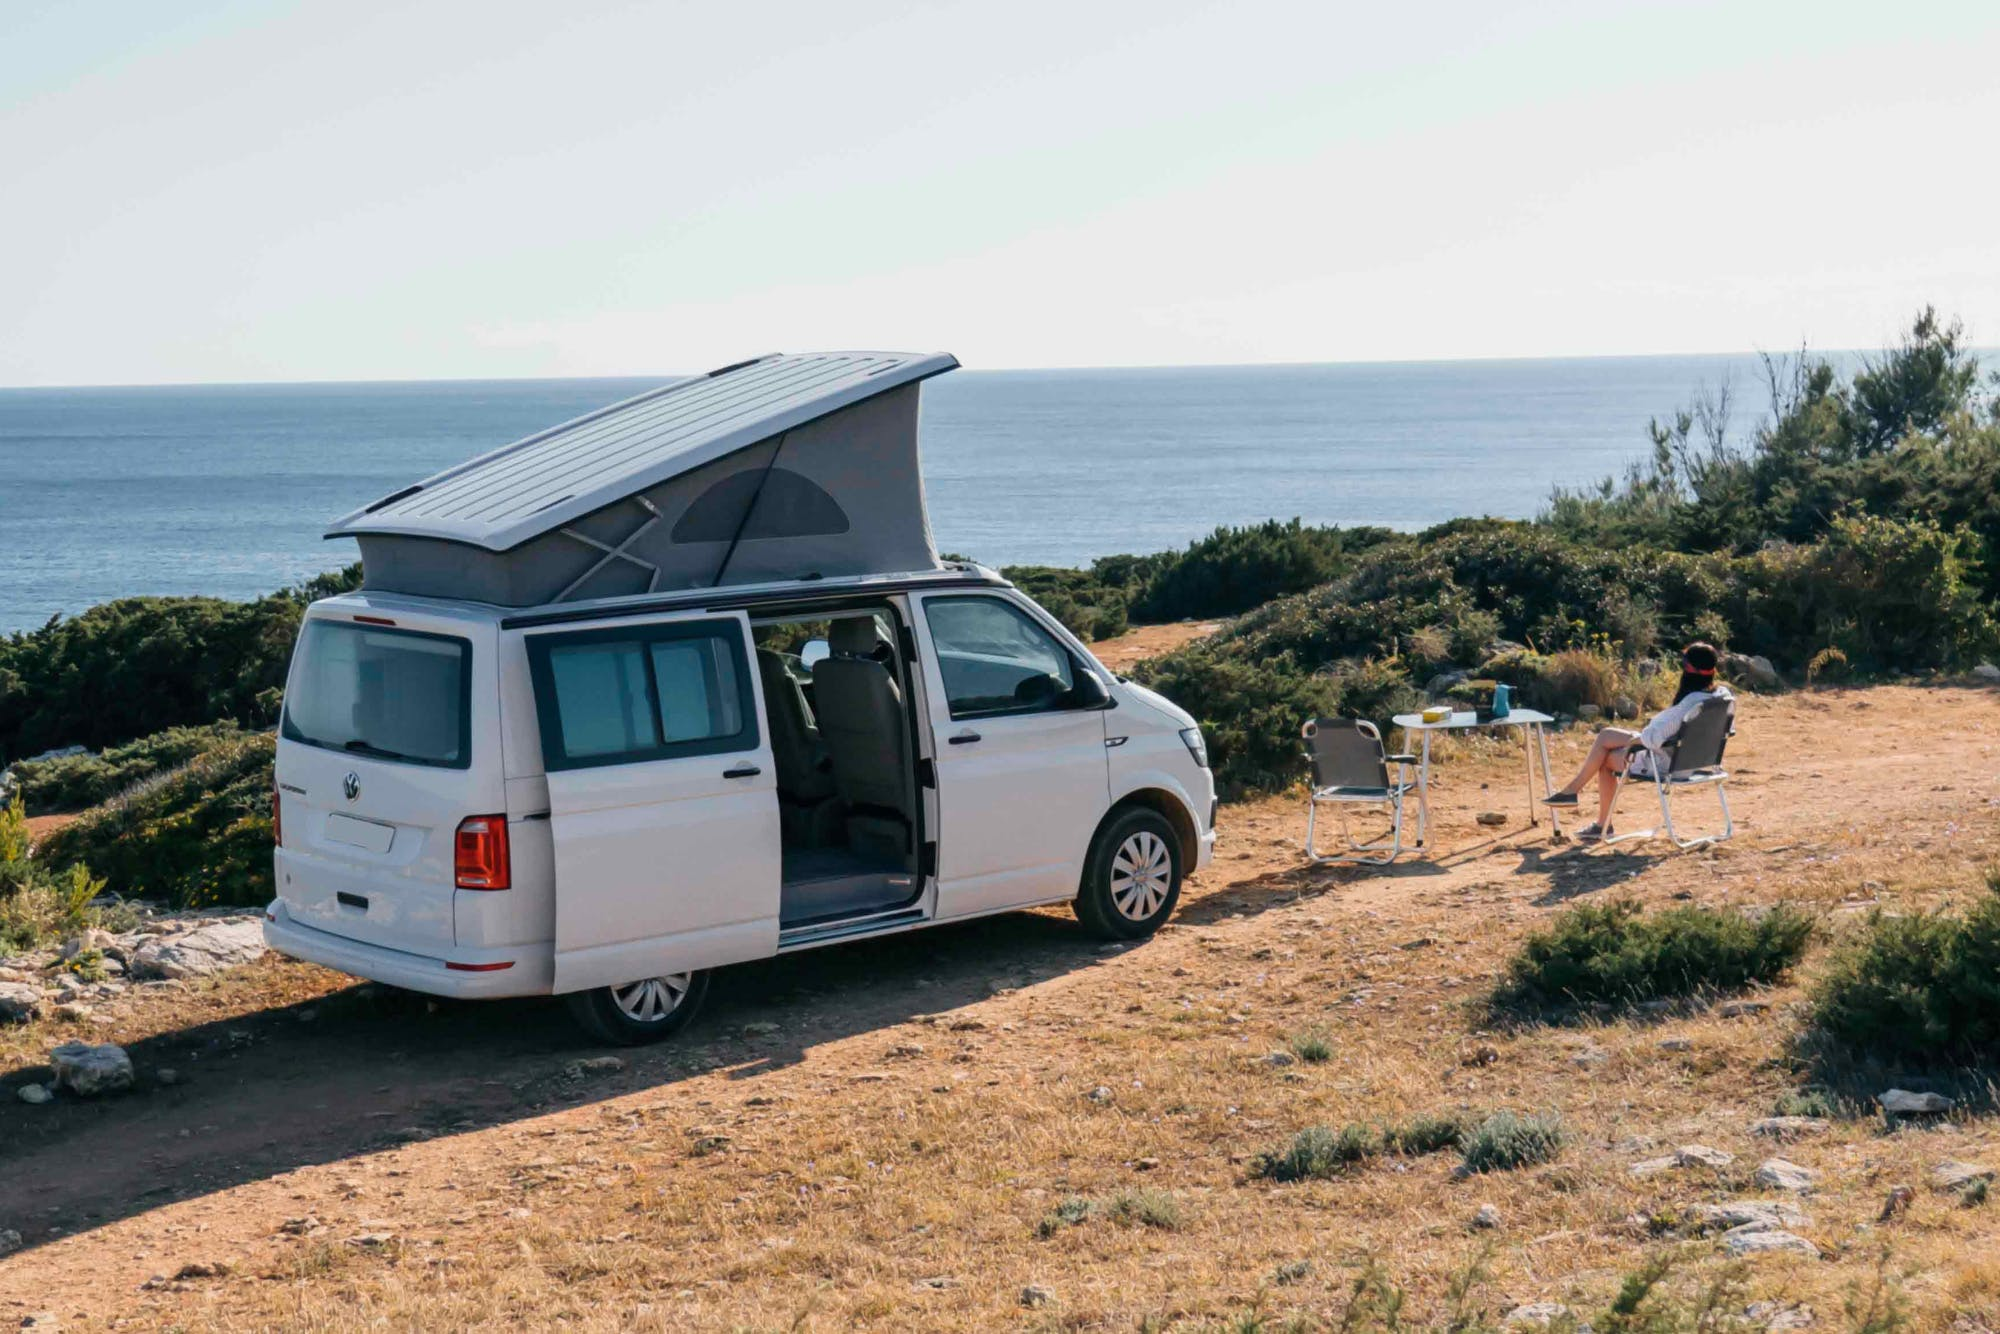 Woman sitting next to the VW California campervan admiring the landscape